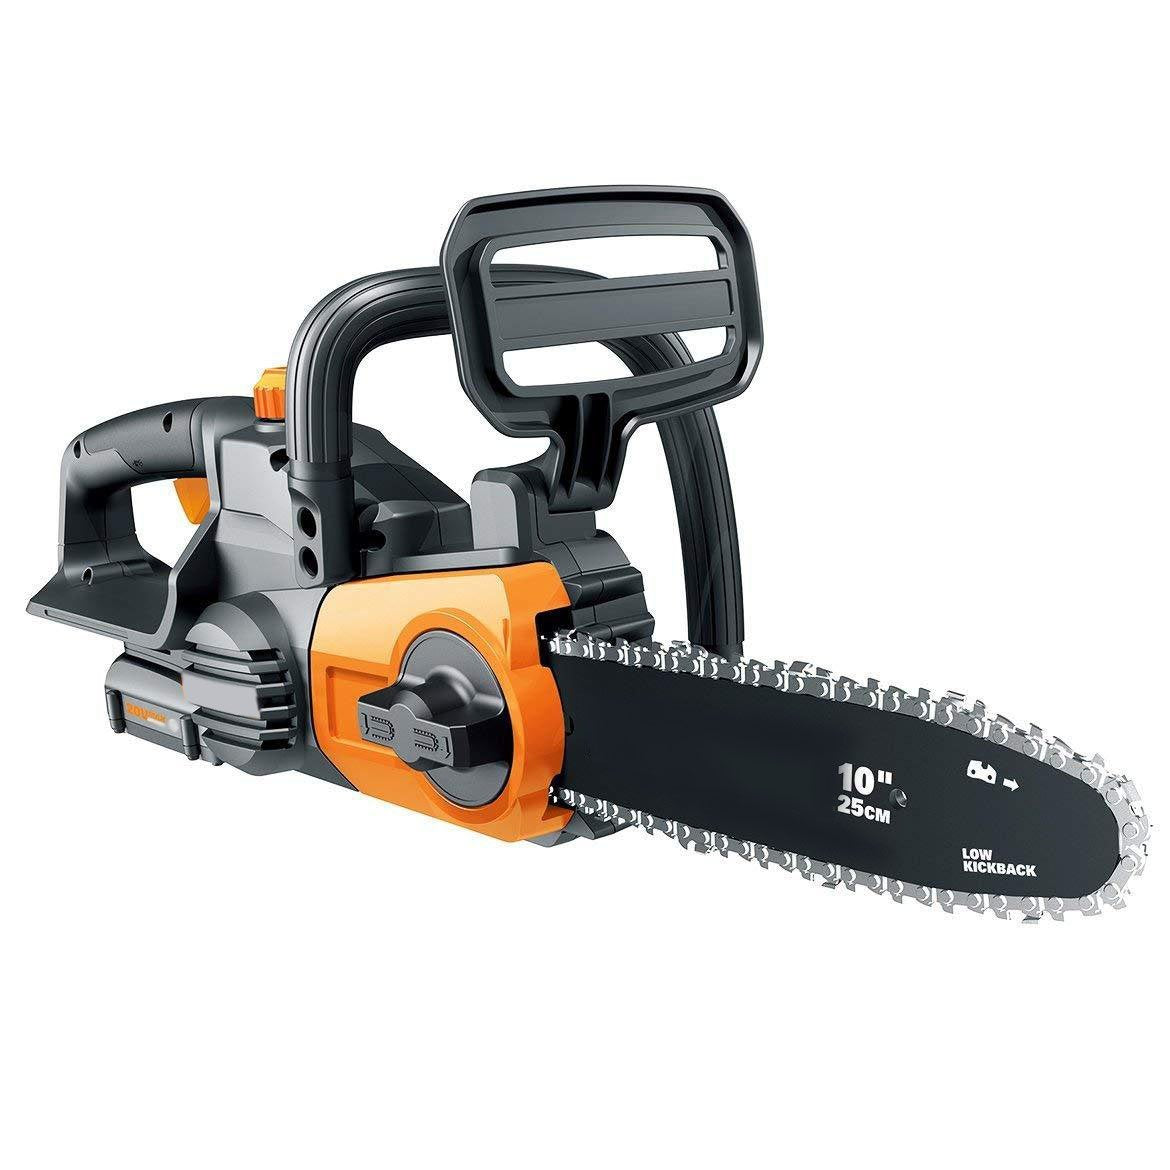 20V Cordless Chainsaw With Auto-Tension